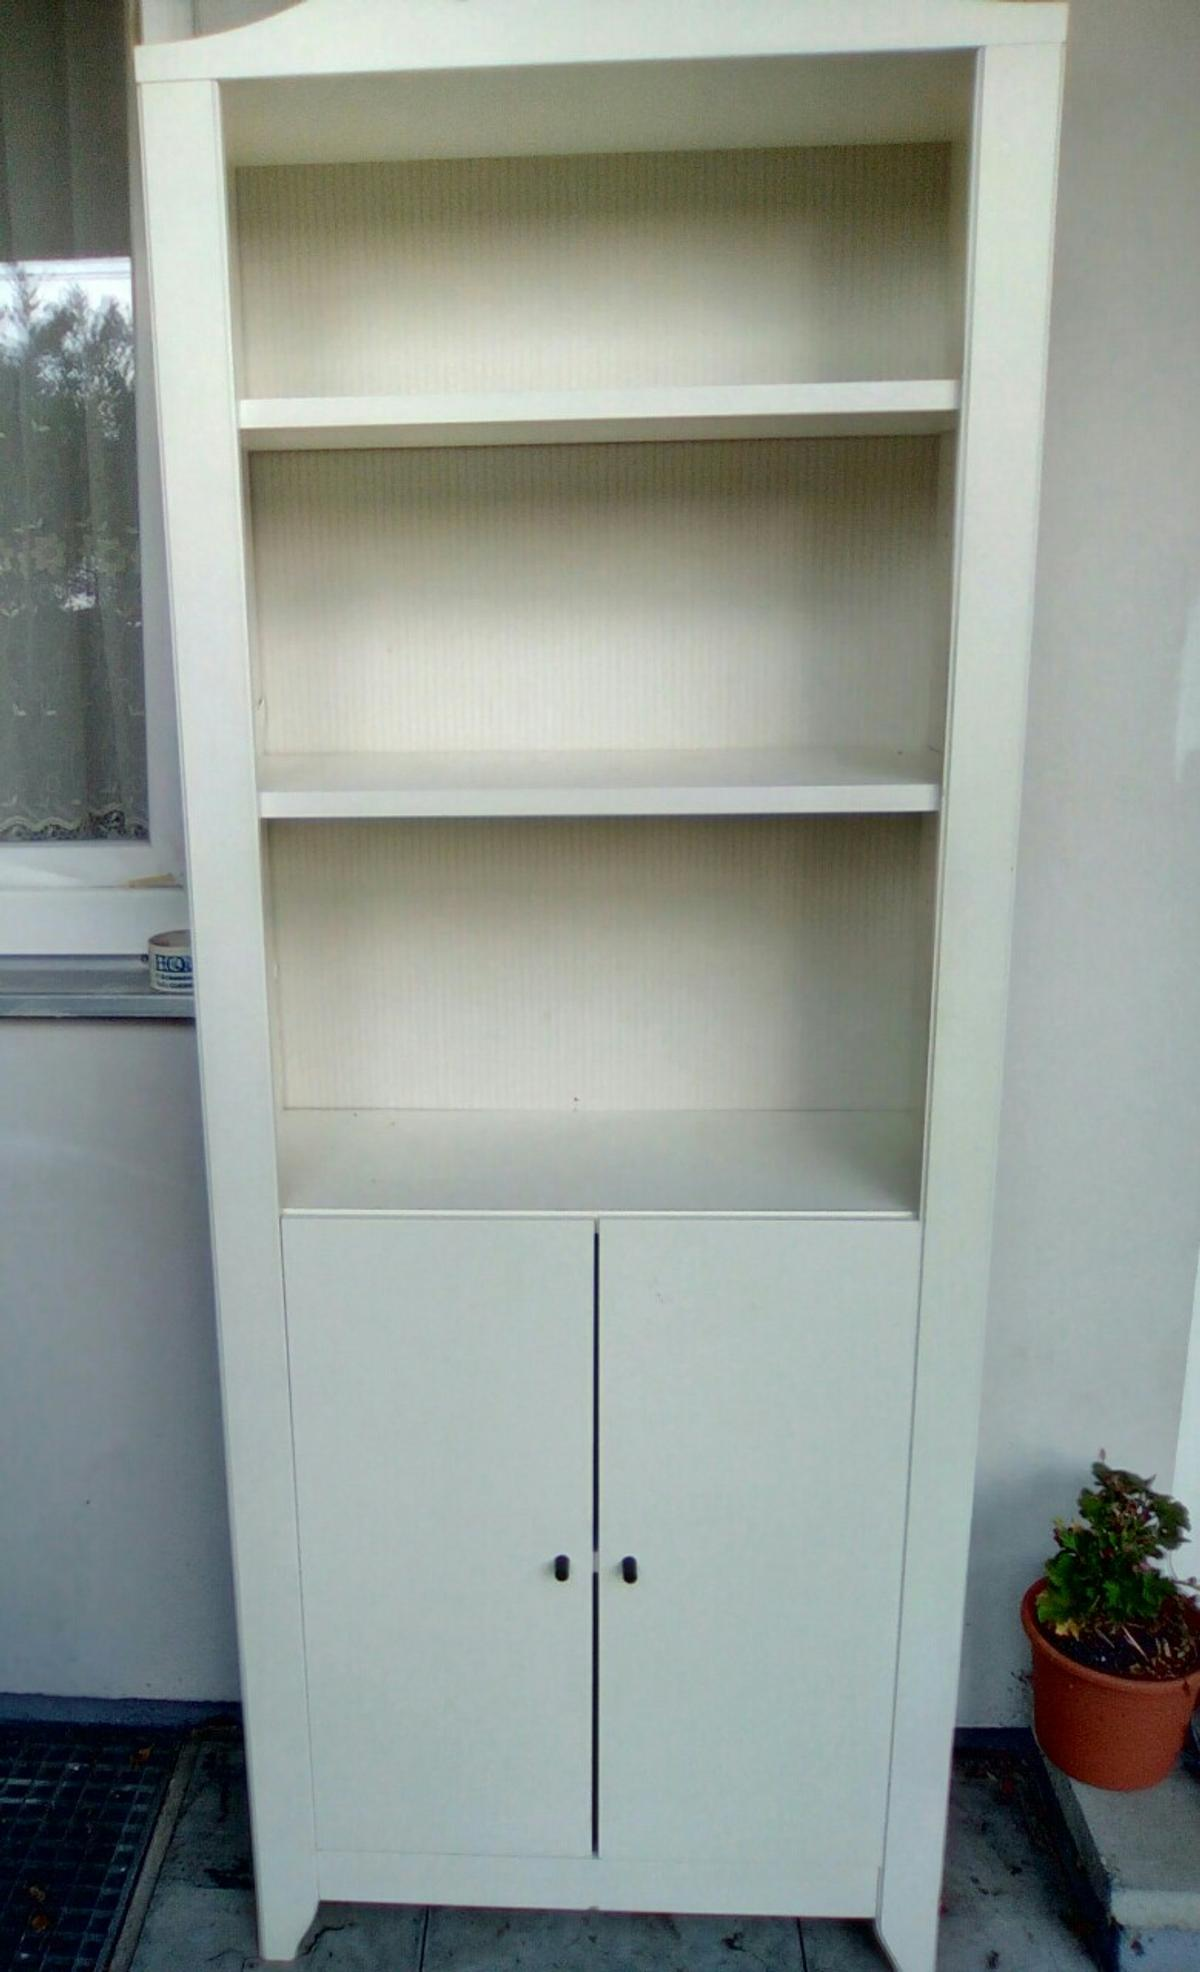 Kuchenschrank Regal In 83404 Ainring For Free For Sale Shpock